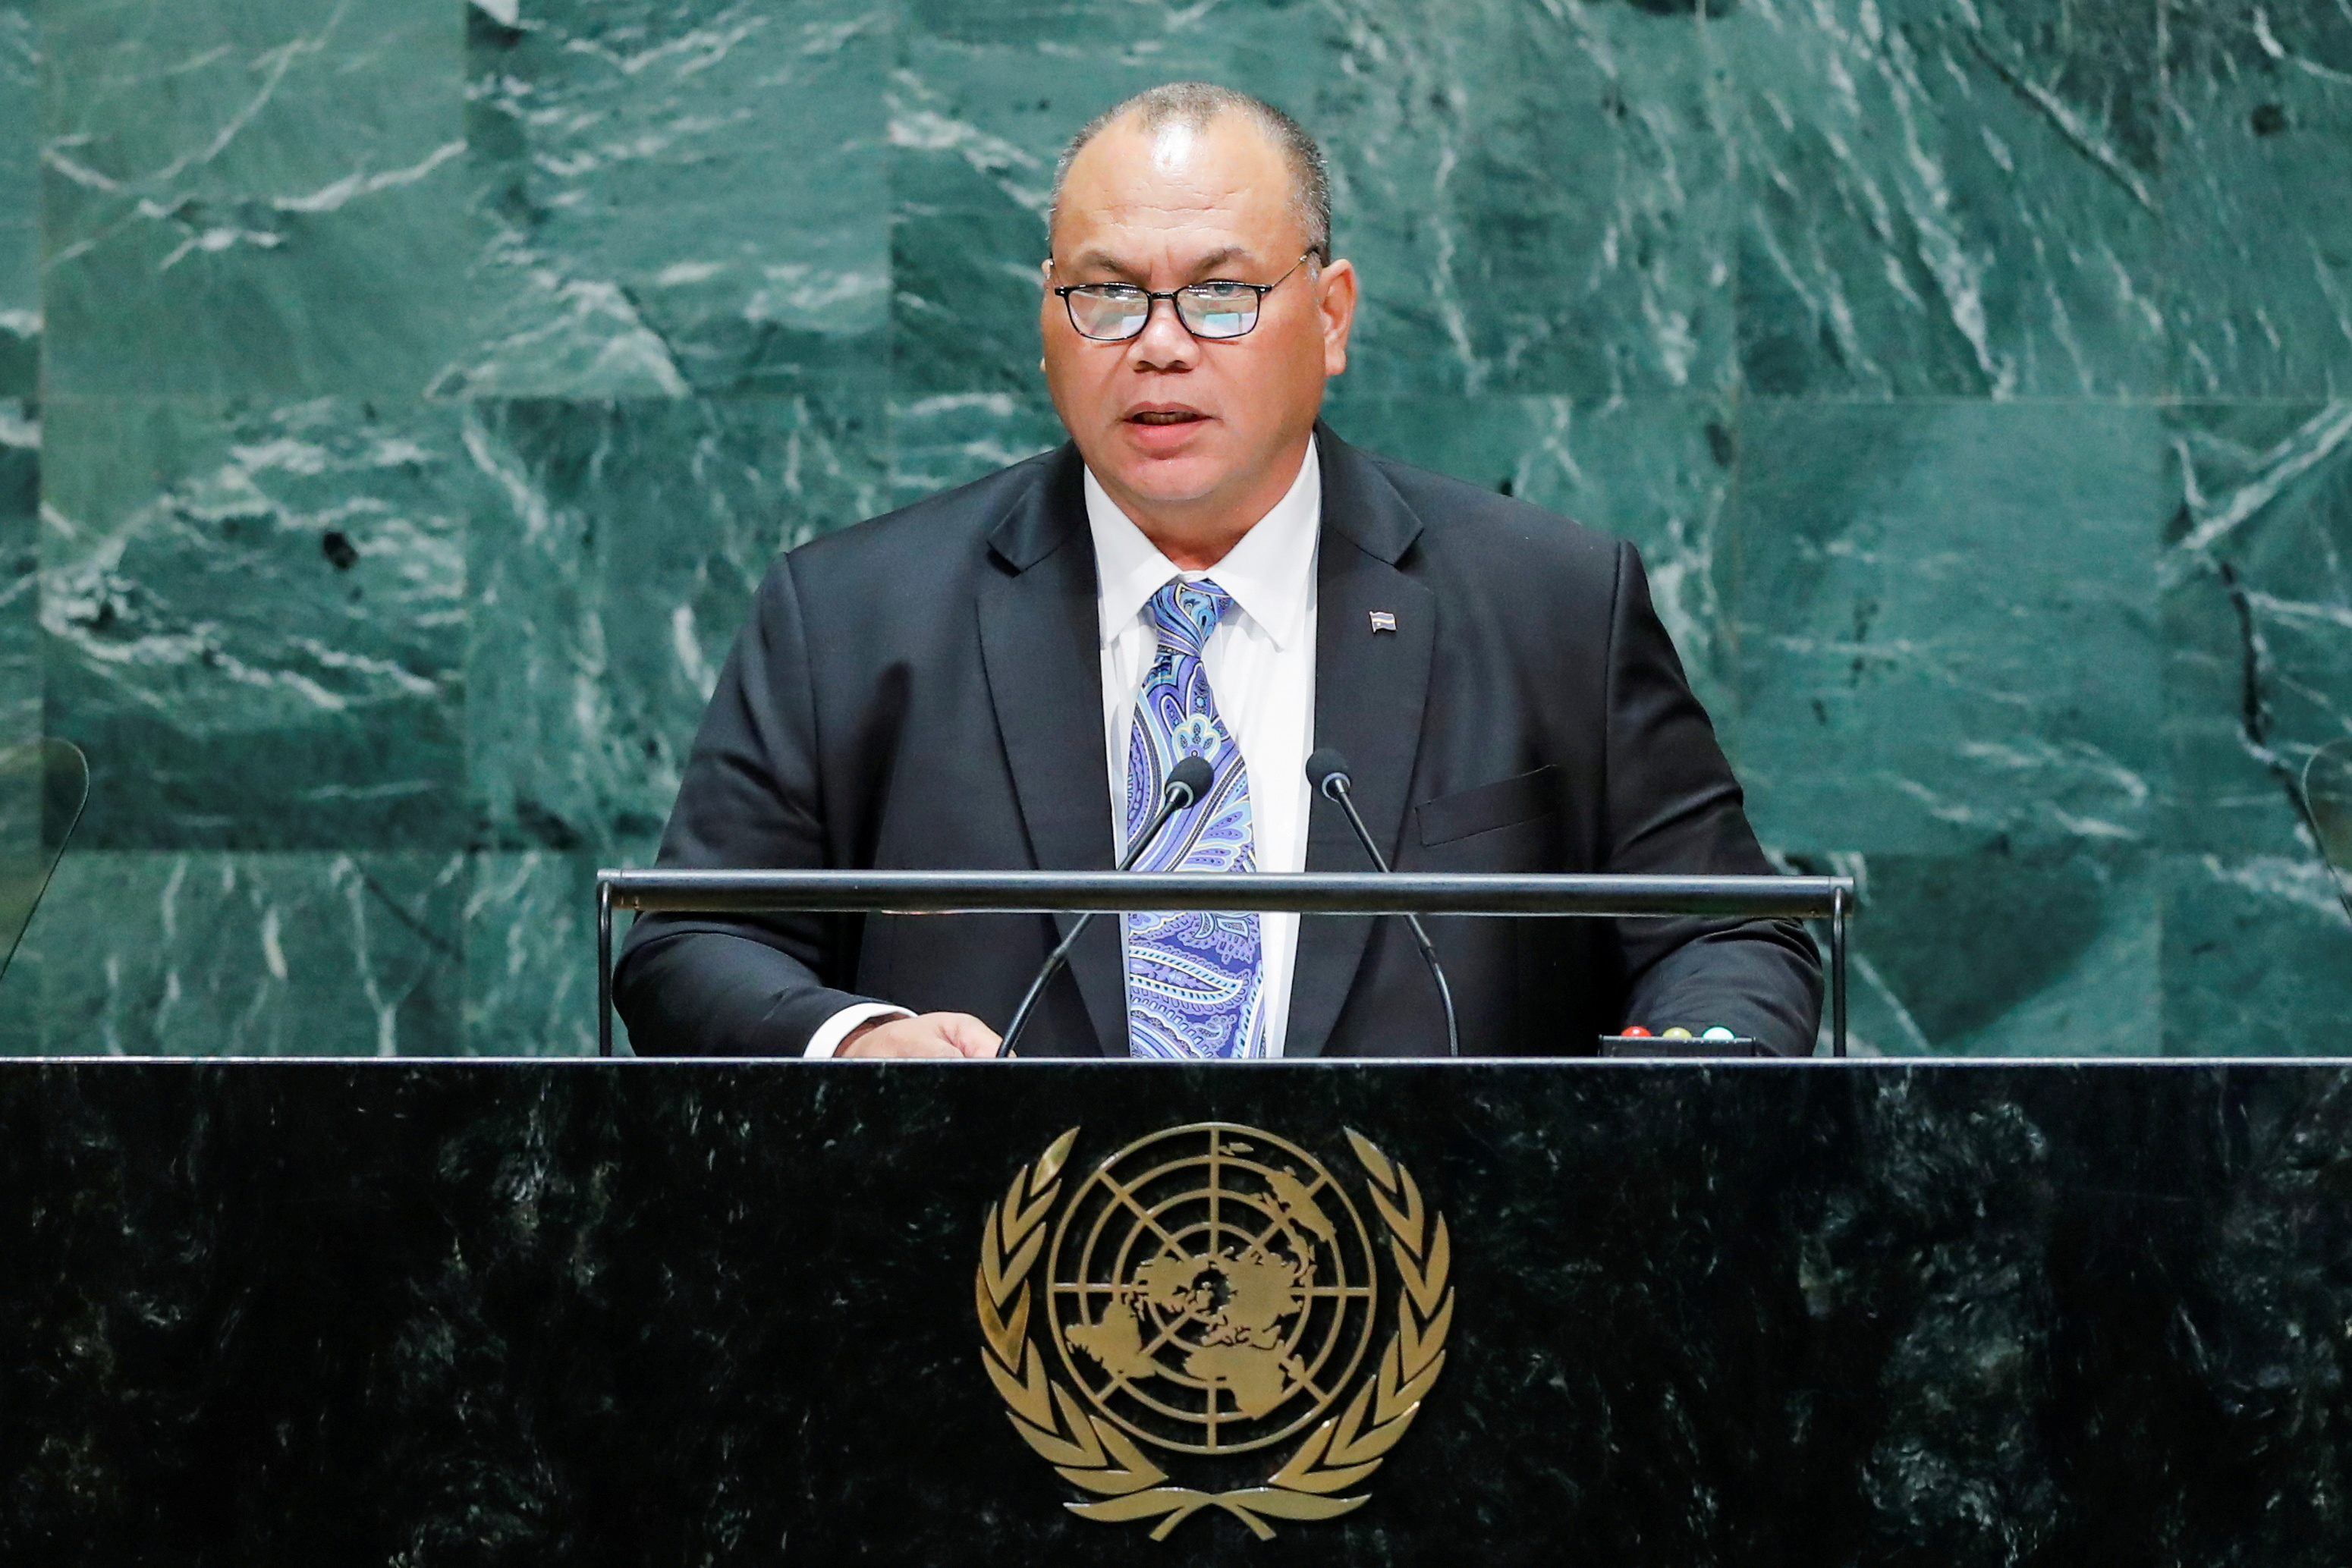 President of Nauru Lionel Rouwen Aingimea  addresses the 74th session of the United Nations General Assembly at U.N. headquarters in New York City, New York, U.S., September 26, 2019. REUTERS/Eduardo Munoz